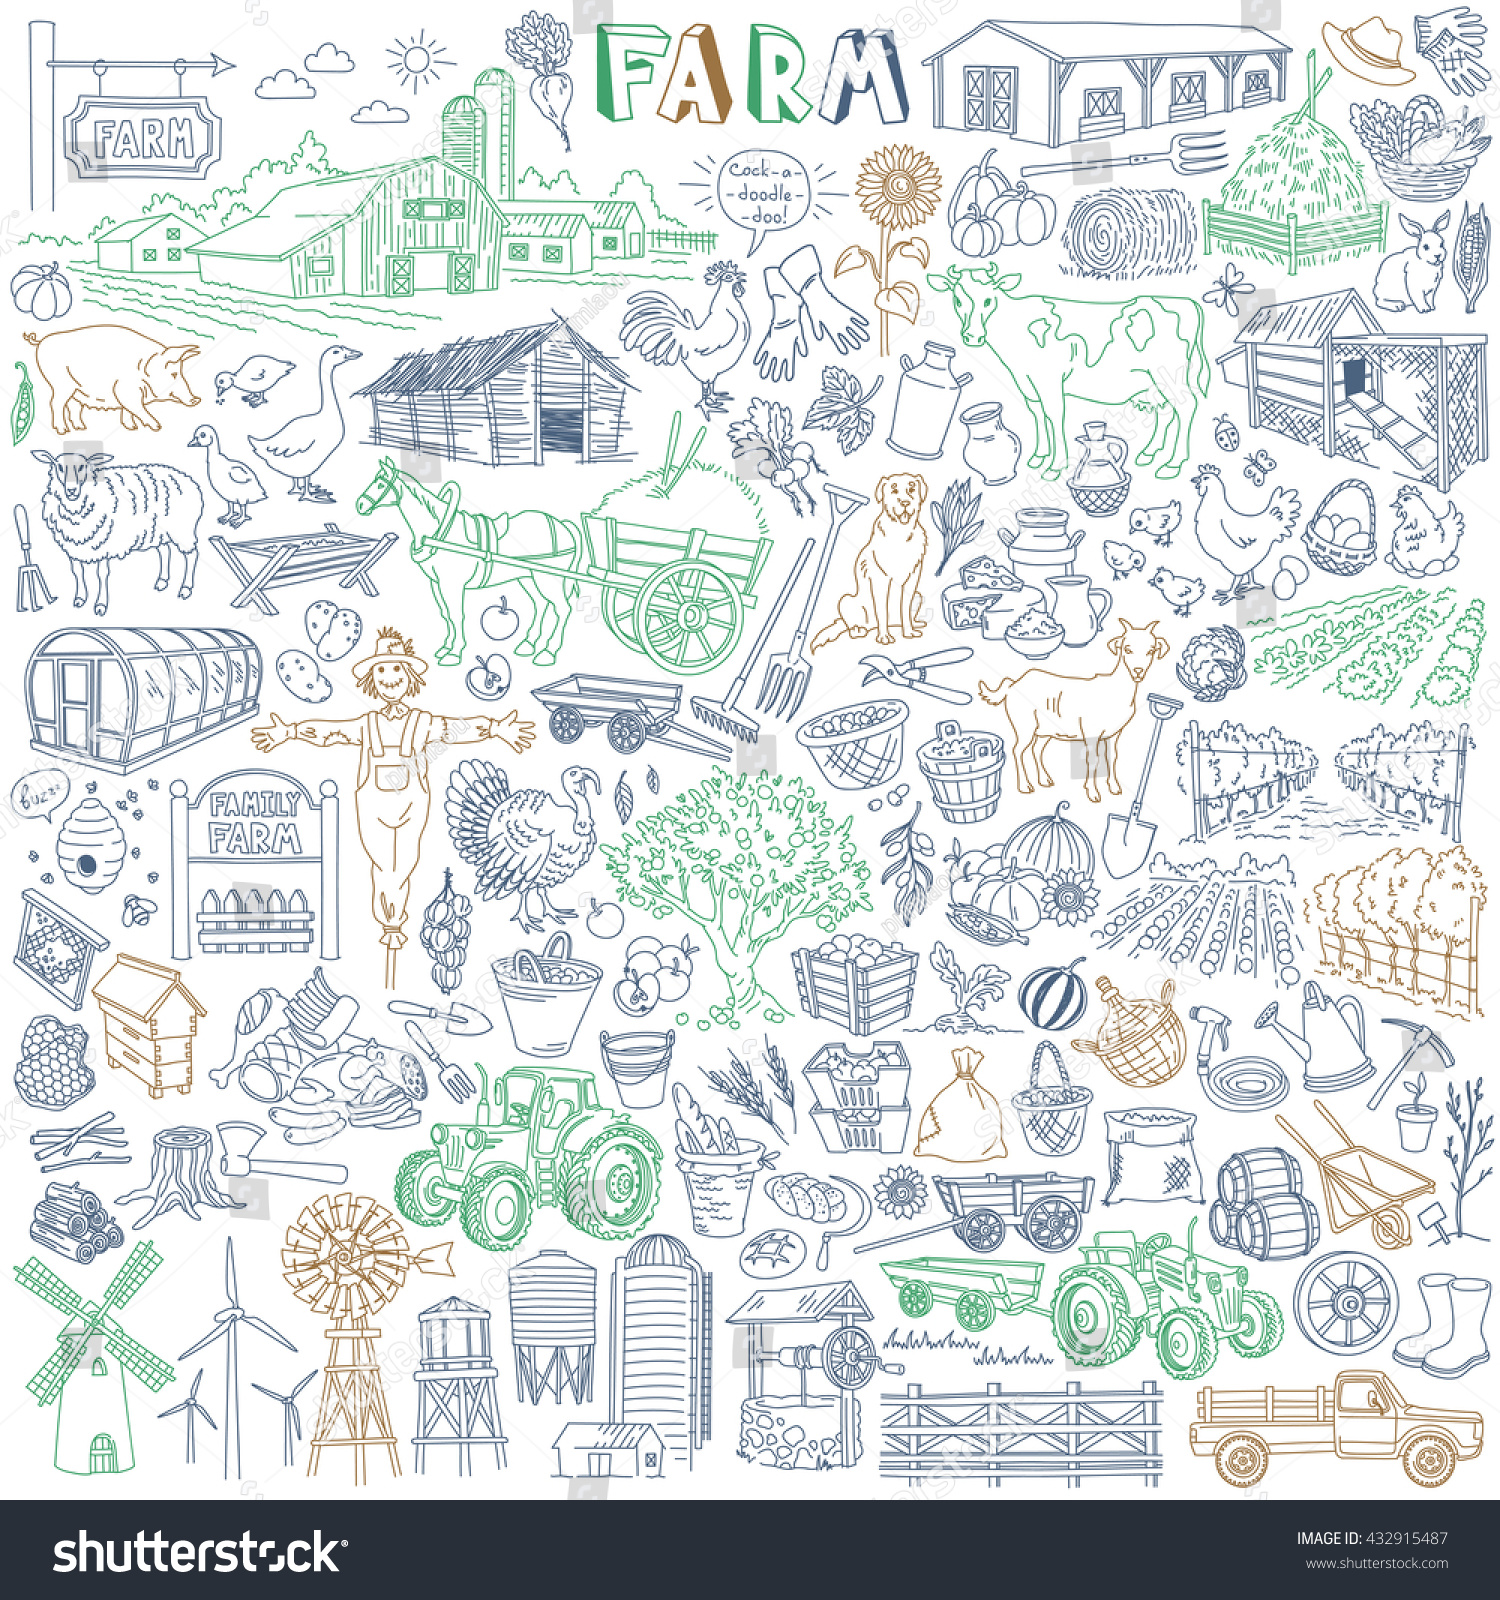 farm vector drawings collection various types stock vector